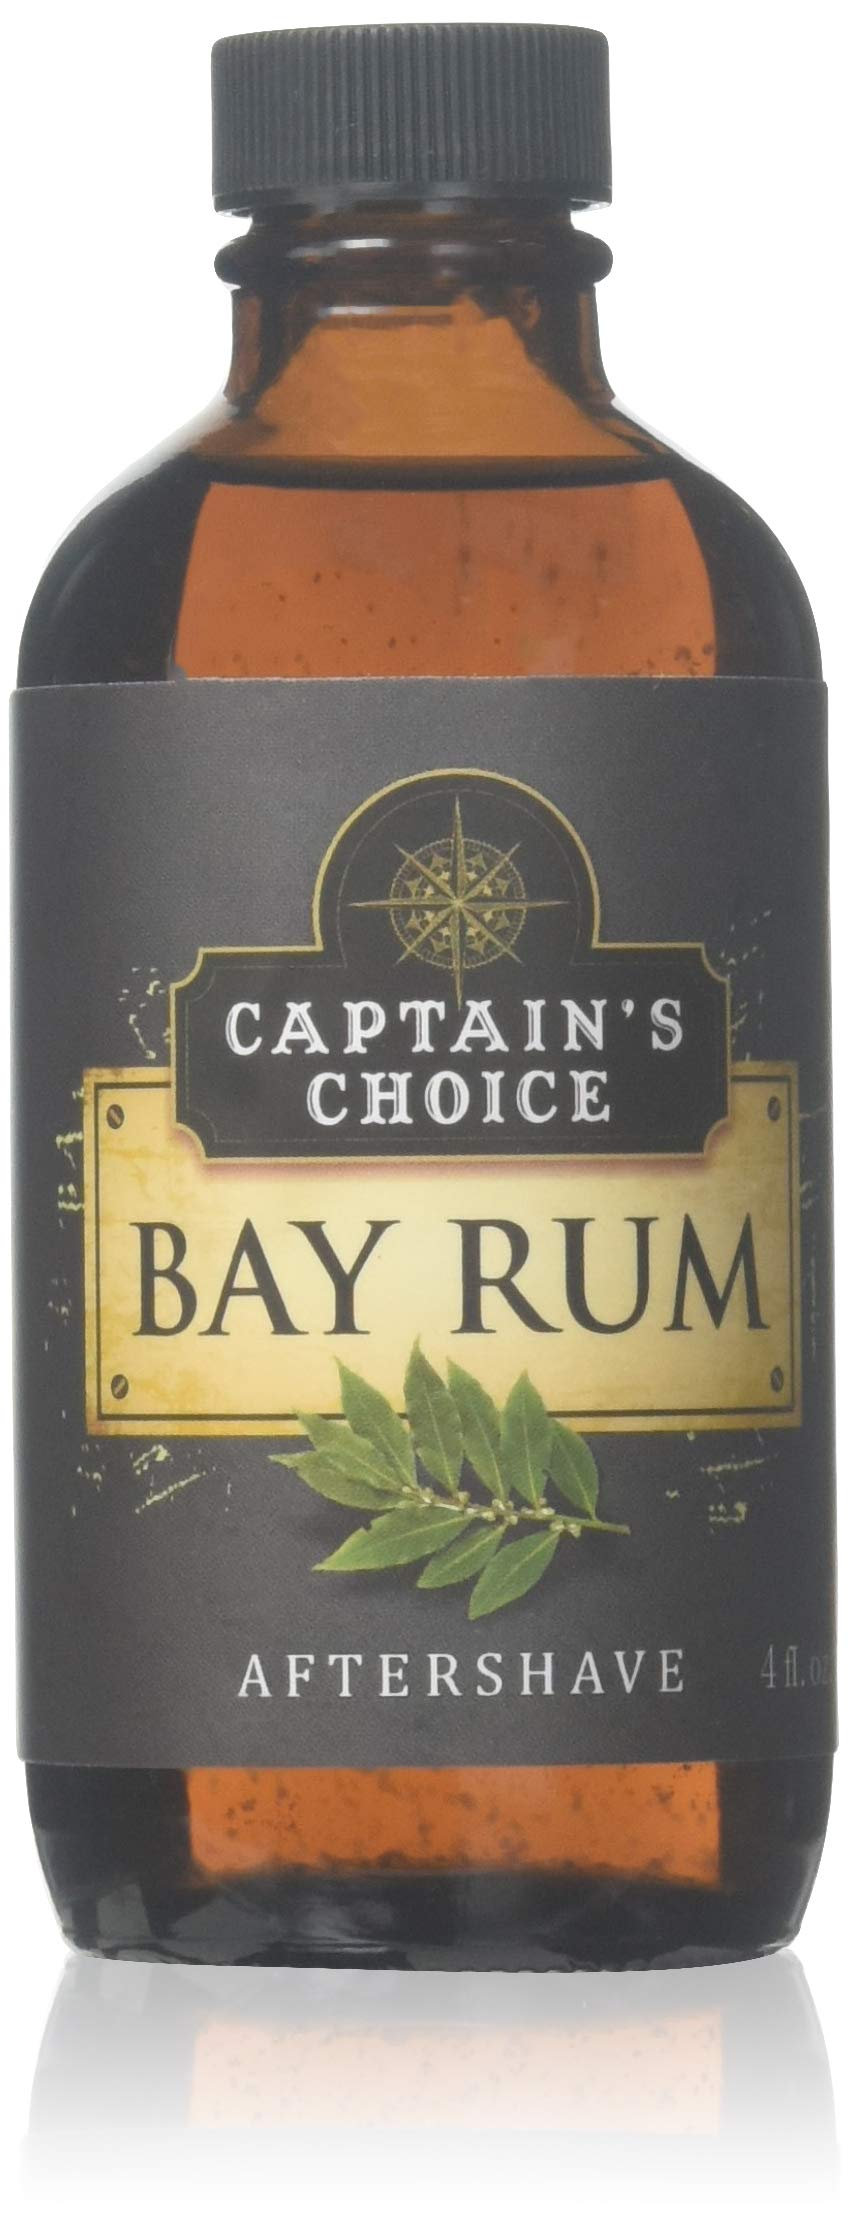 Captain's Choice Original Bay Rum 4.0 oz After Shave Pour